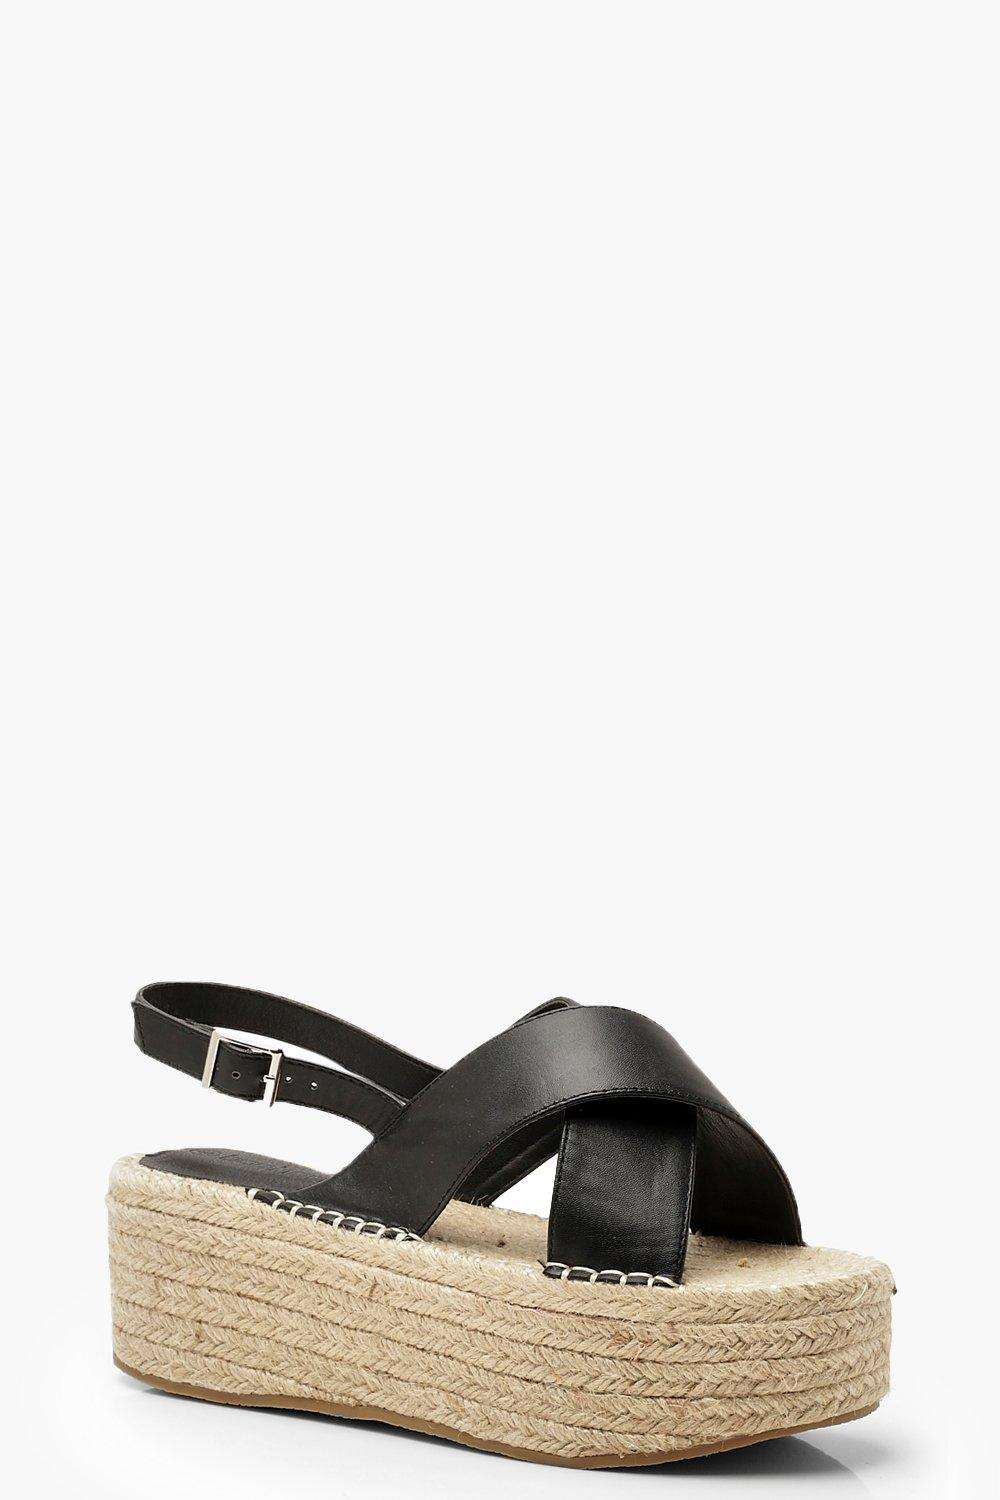 c396fbfec85 Wide Fit Cross Strap Flatforms. Hover to zoom